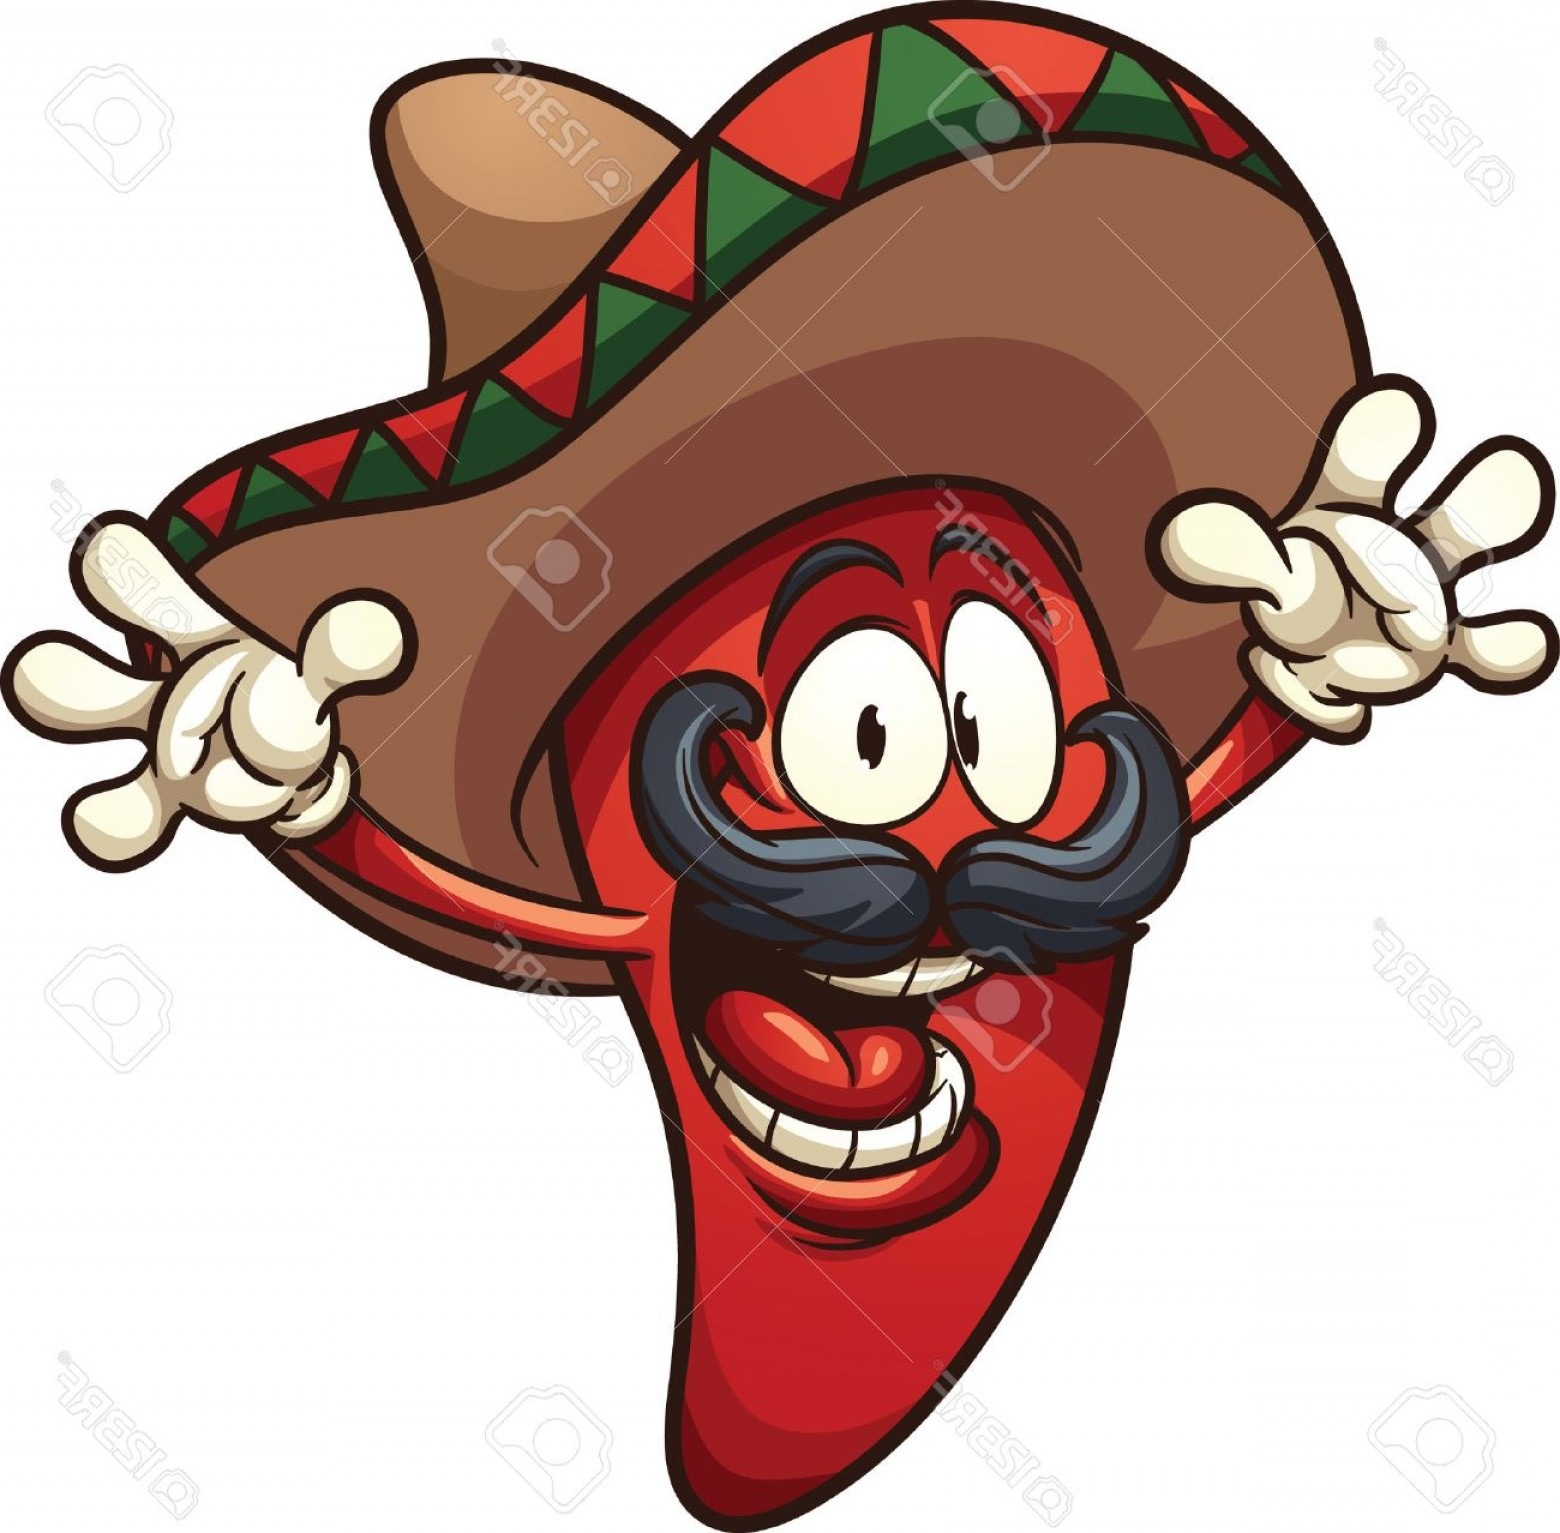 Vector Mexican Chili: Photostock Vector Happy Mexican Chili Pepper Vector Clip Art Illustration With Simple Gradients All In A Single Layer